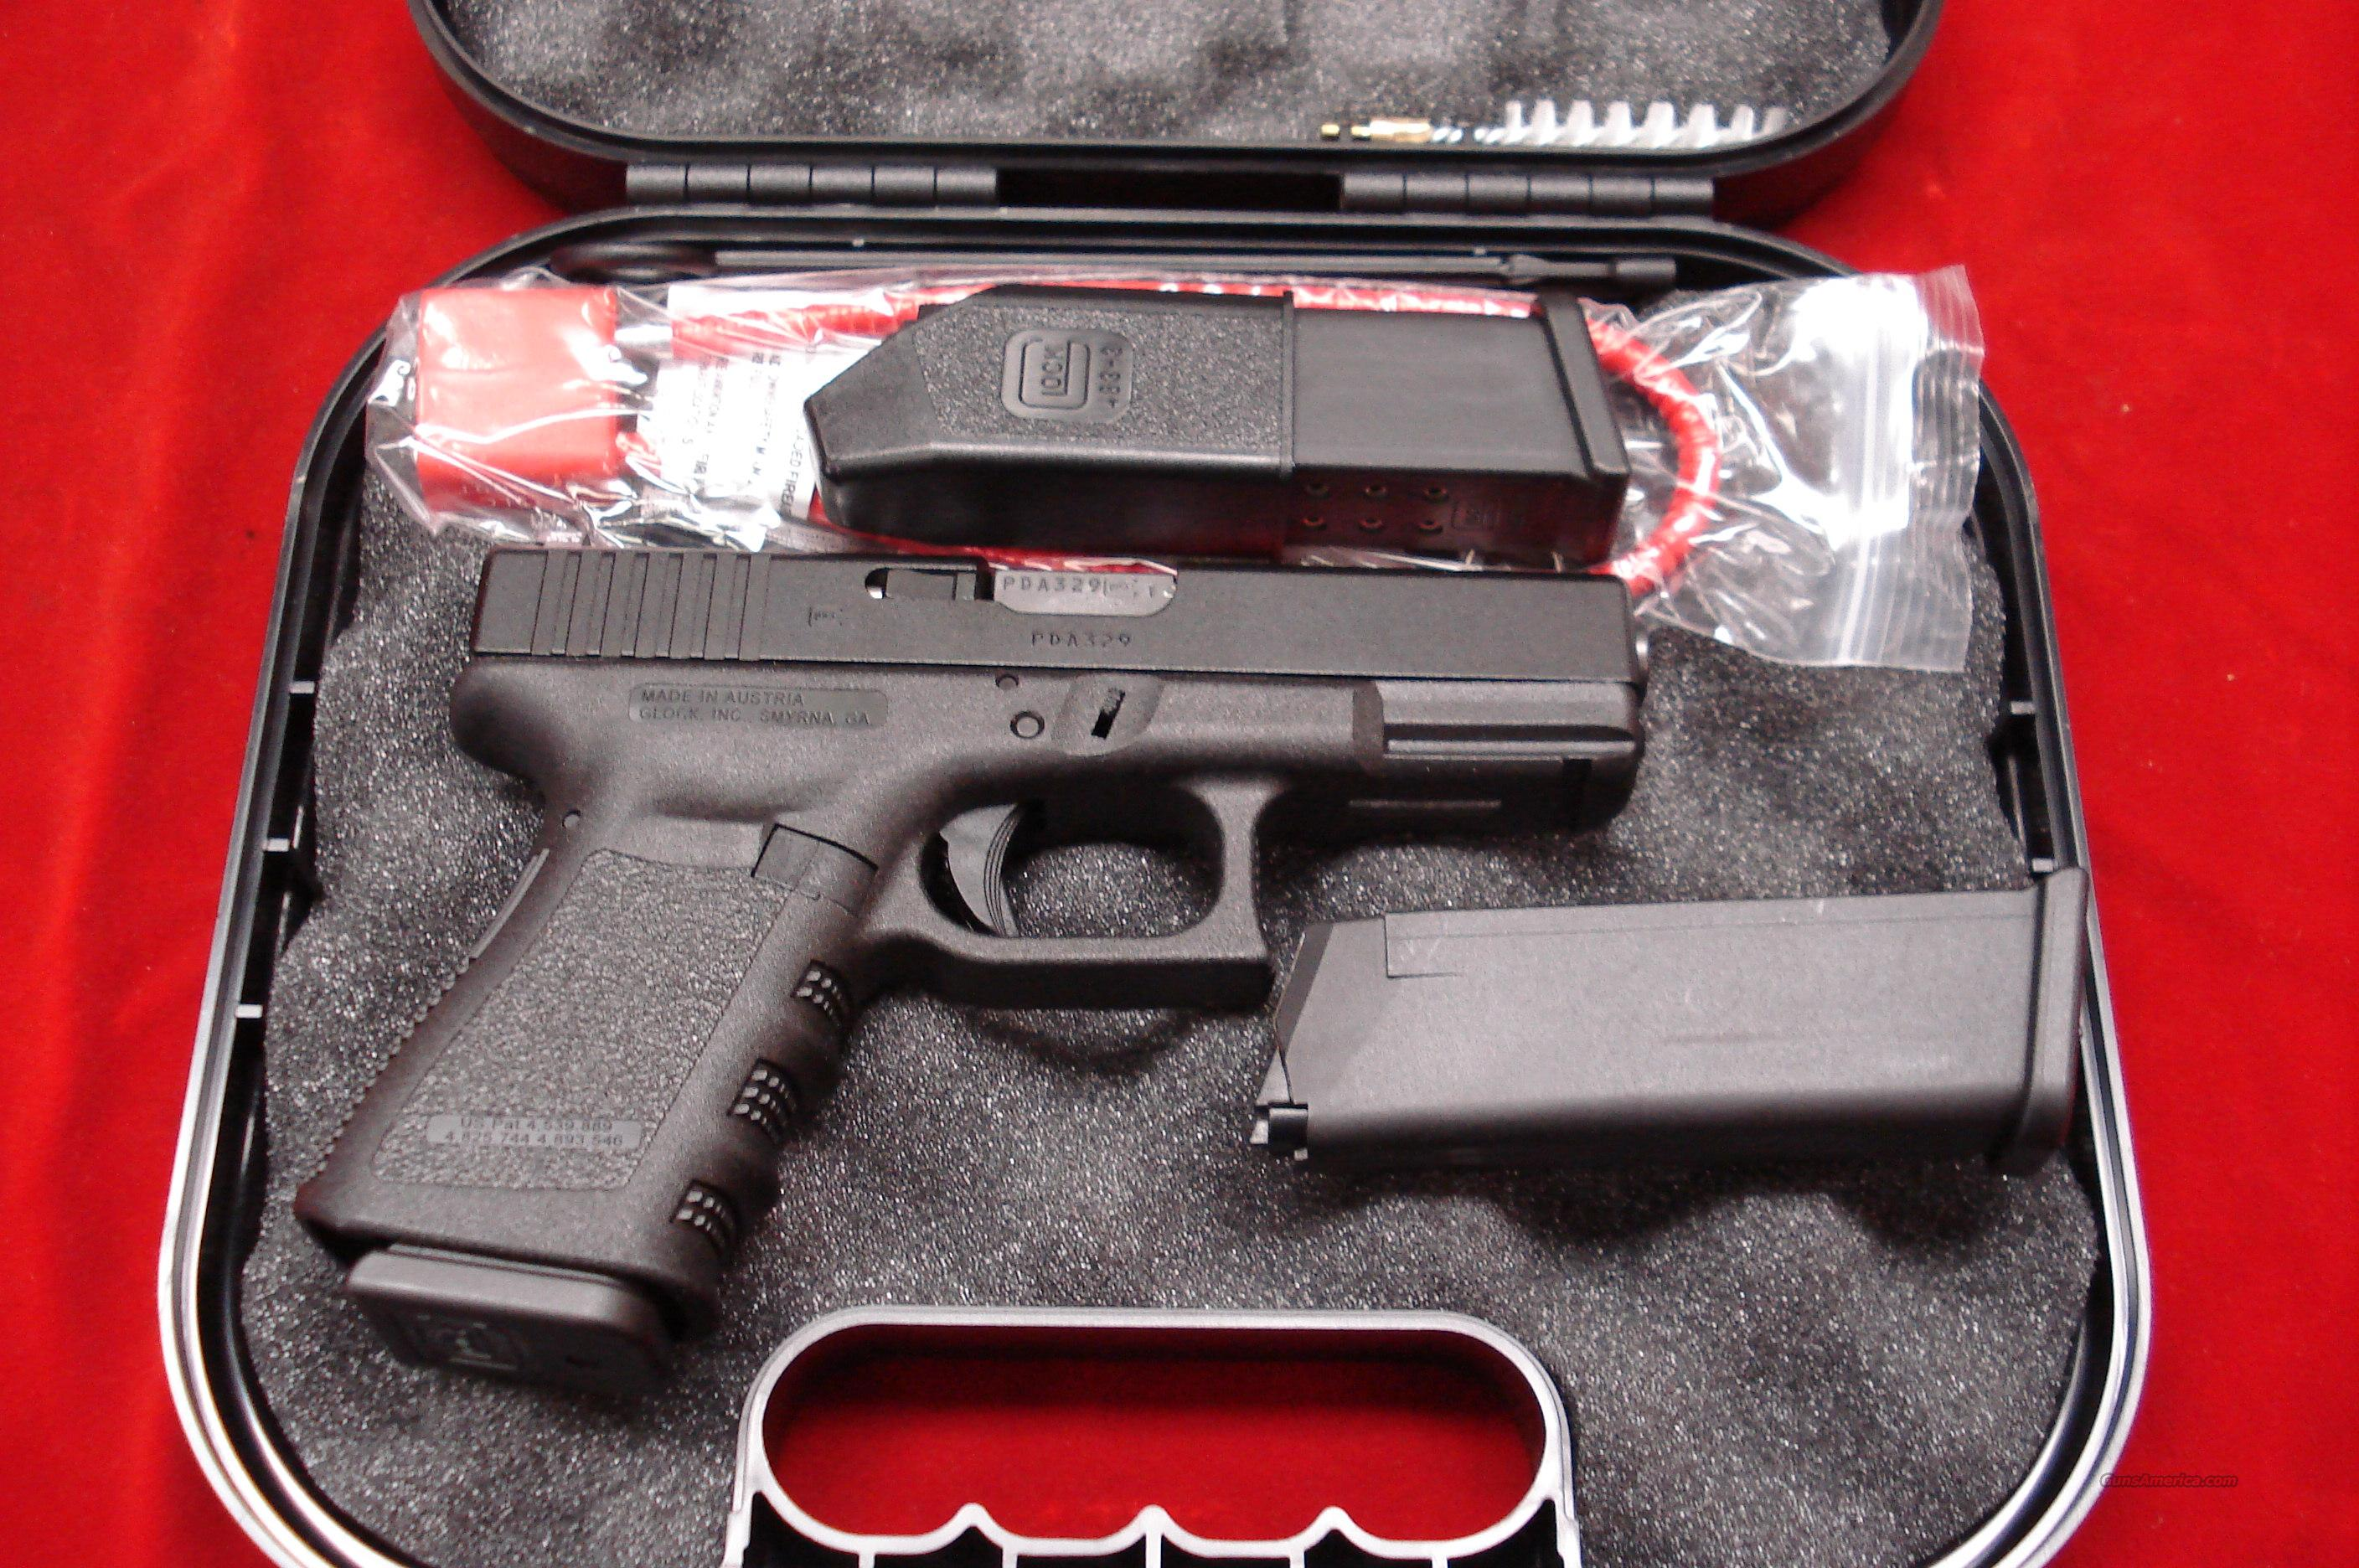 GLOCK MODEL 19 9MM WITH TRIJICON NIGHT SIGHTS AND 3 HIGH CAPACITY MAGAZINES NEW  Guns > Pistols > Glock Pistols > 19